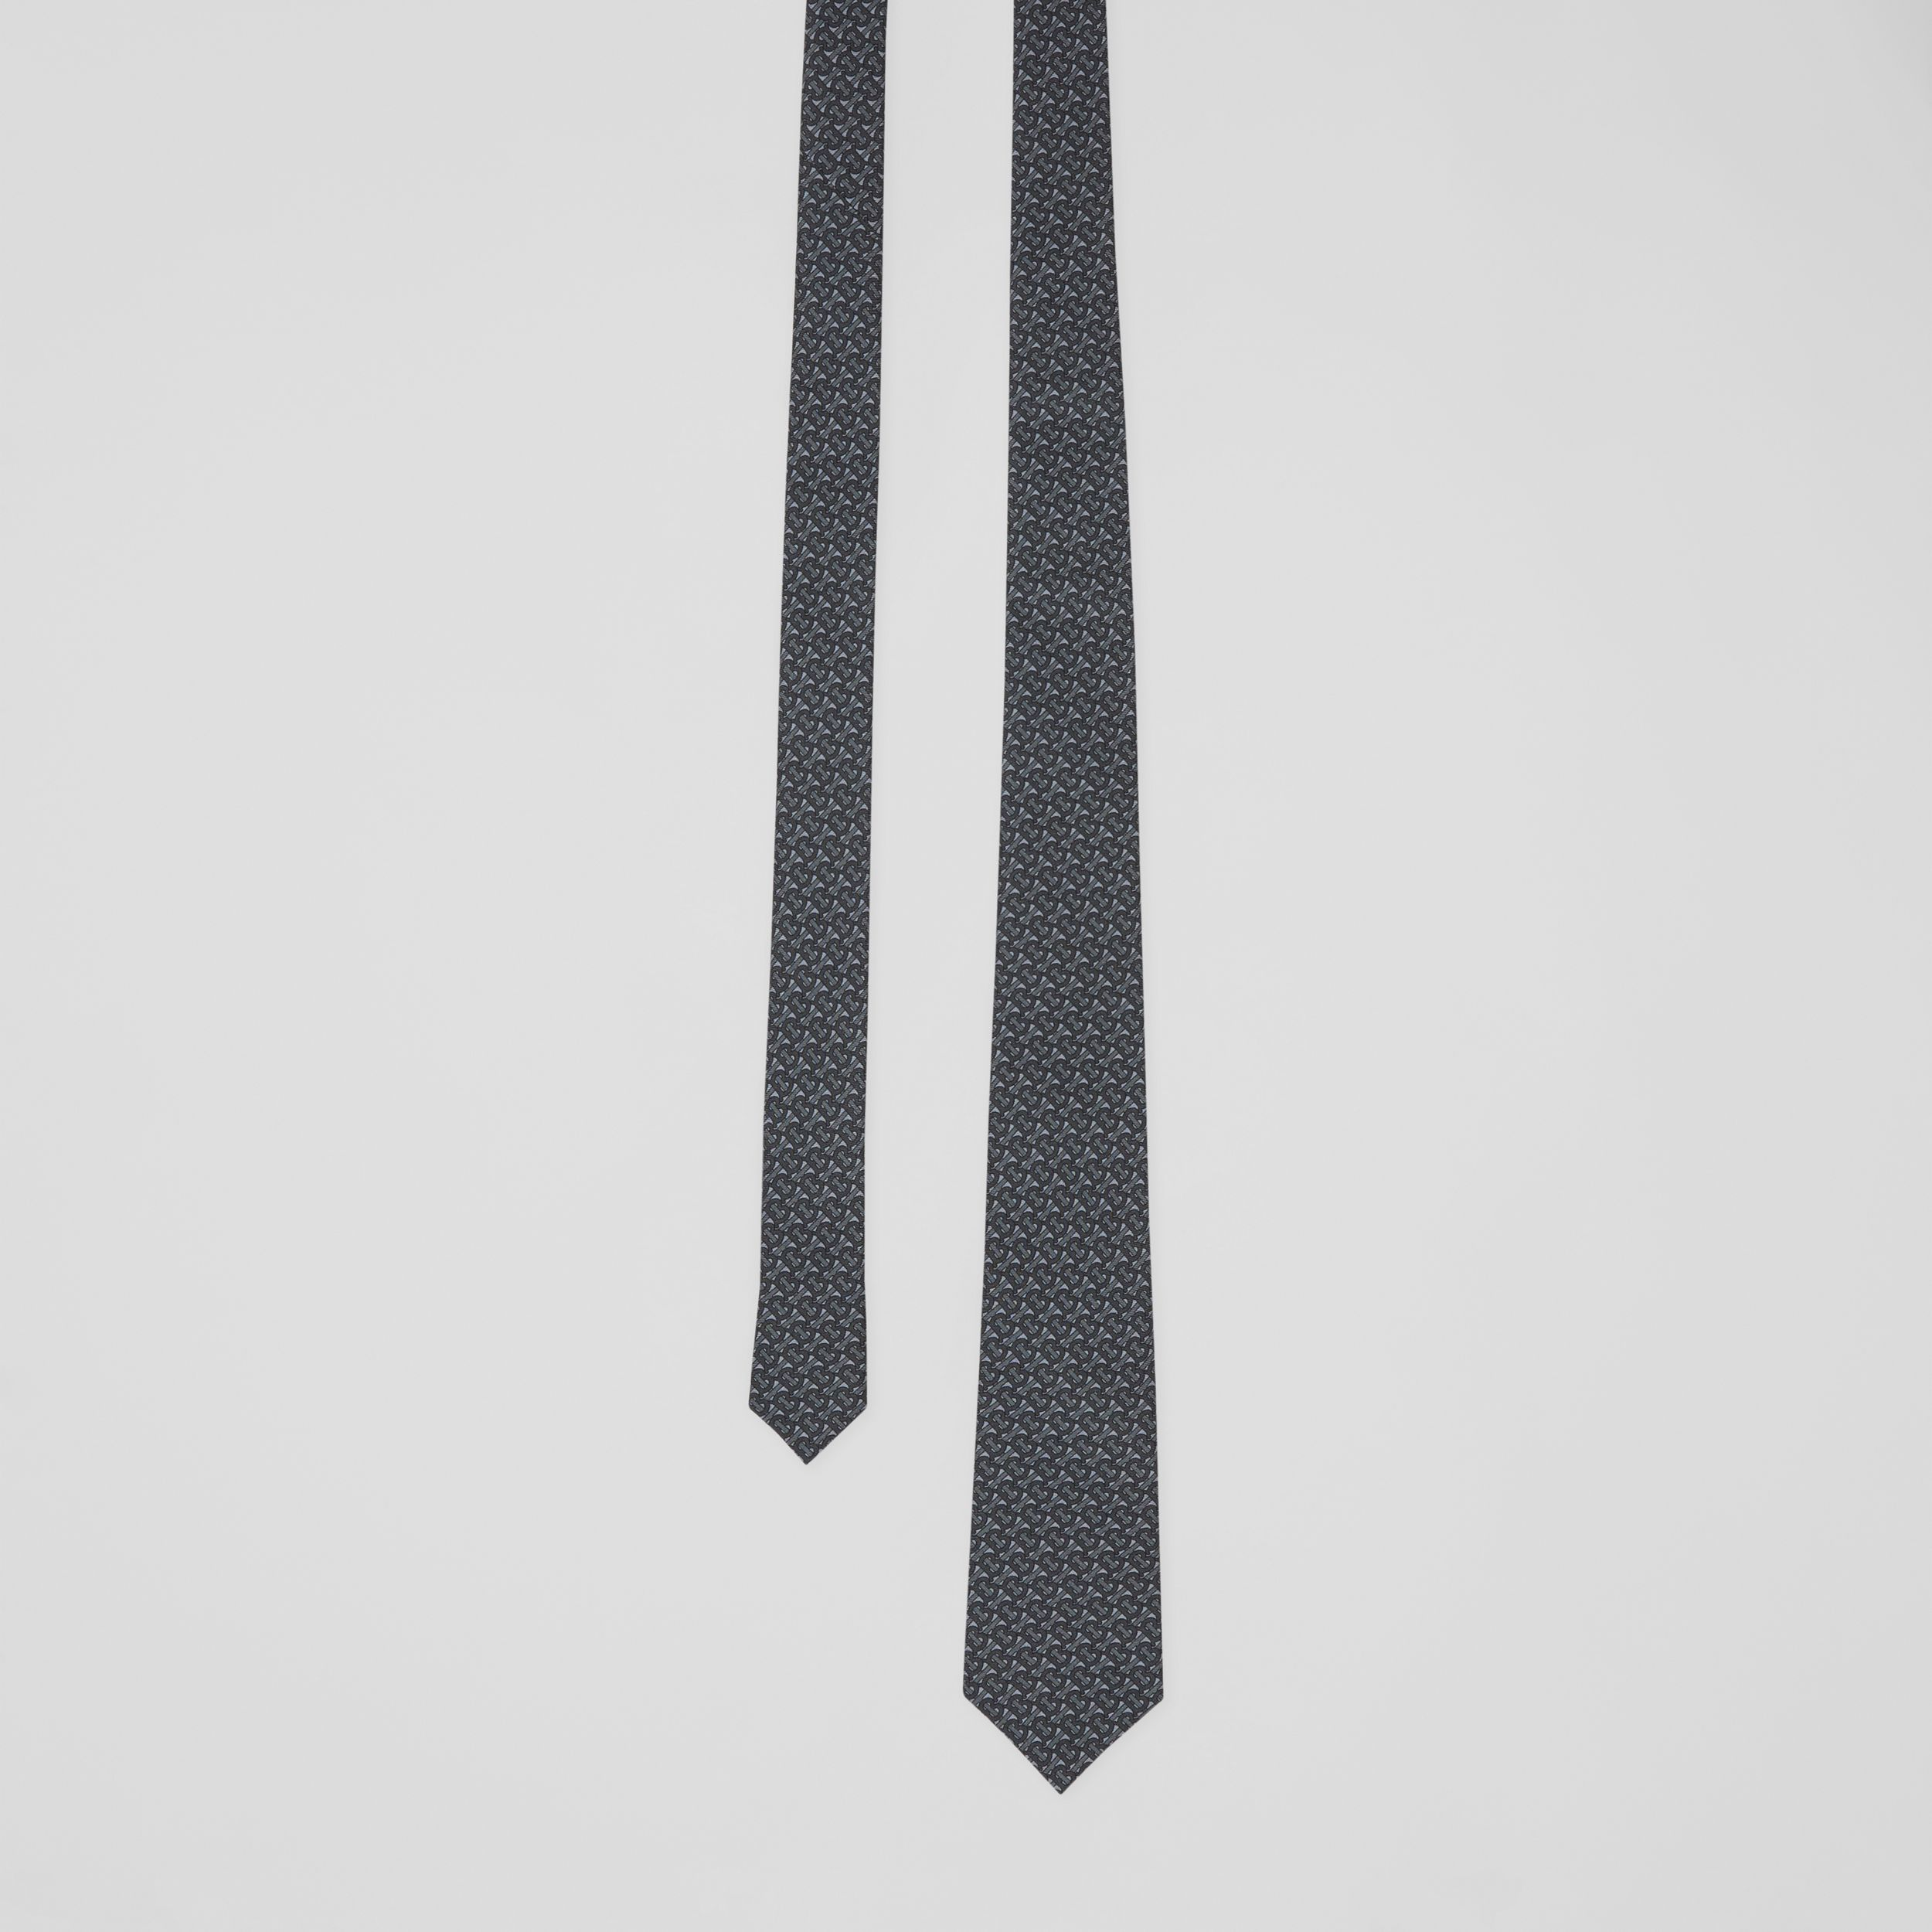 Classic Cut Monogram Silk Jacquard Tie in Mid Grey - Men | Burberry - 1